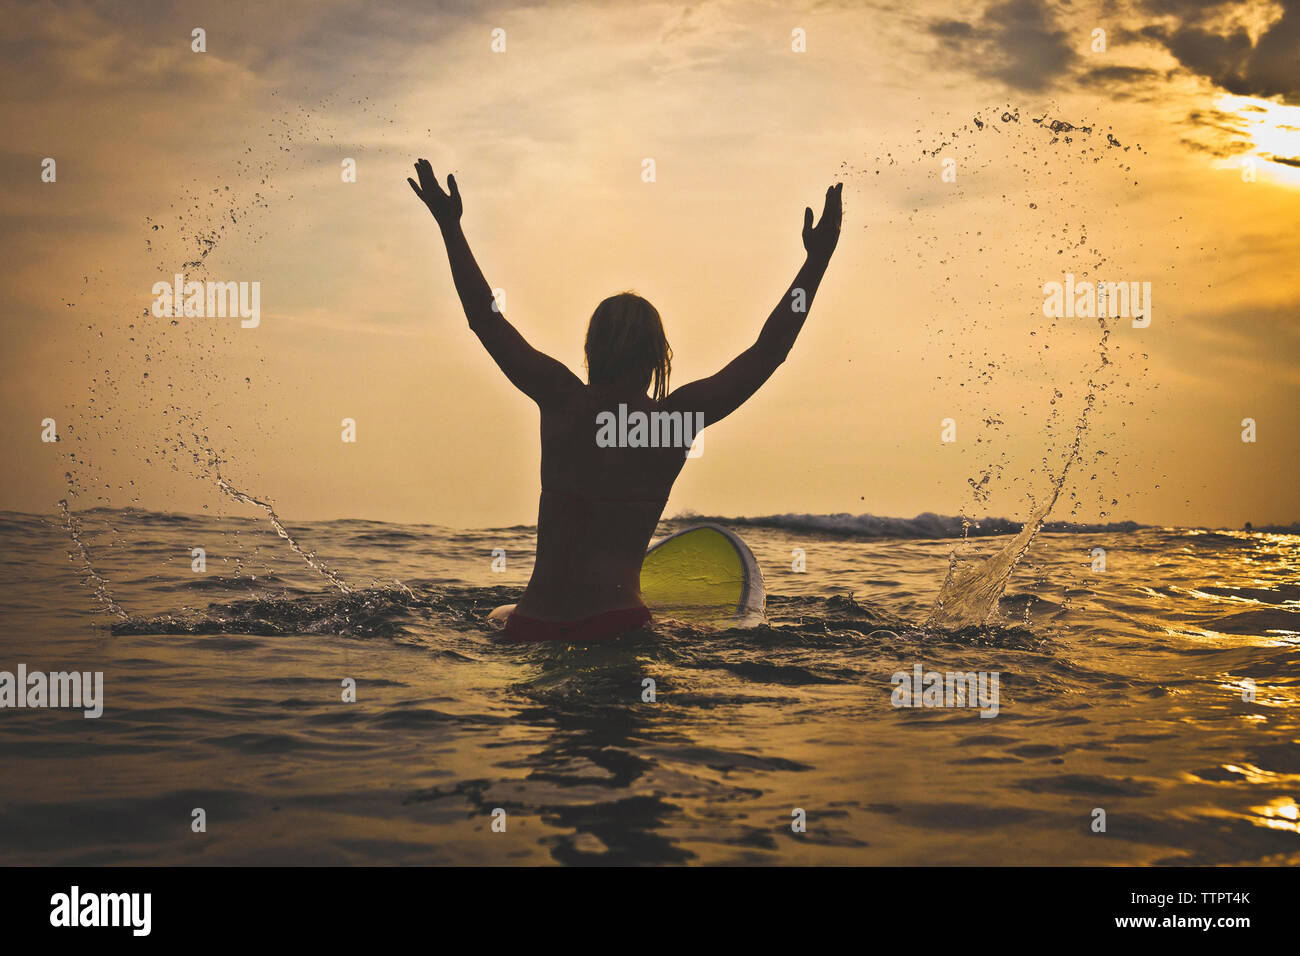 Rear view of playful woman splashing water while sitting on surfboard in sea - Stock Image